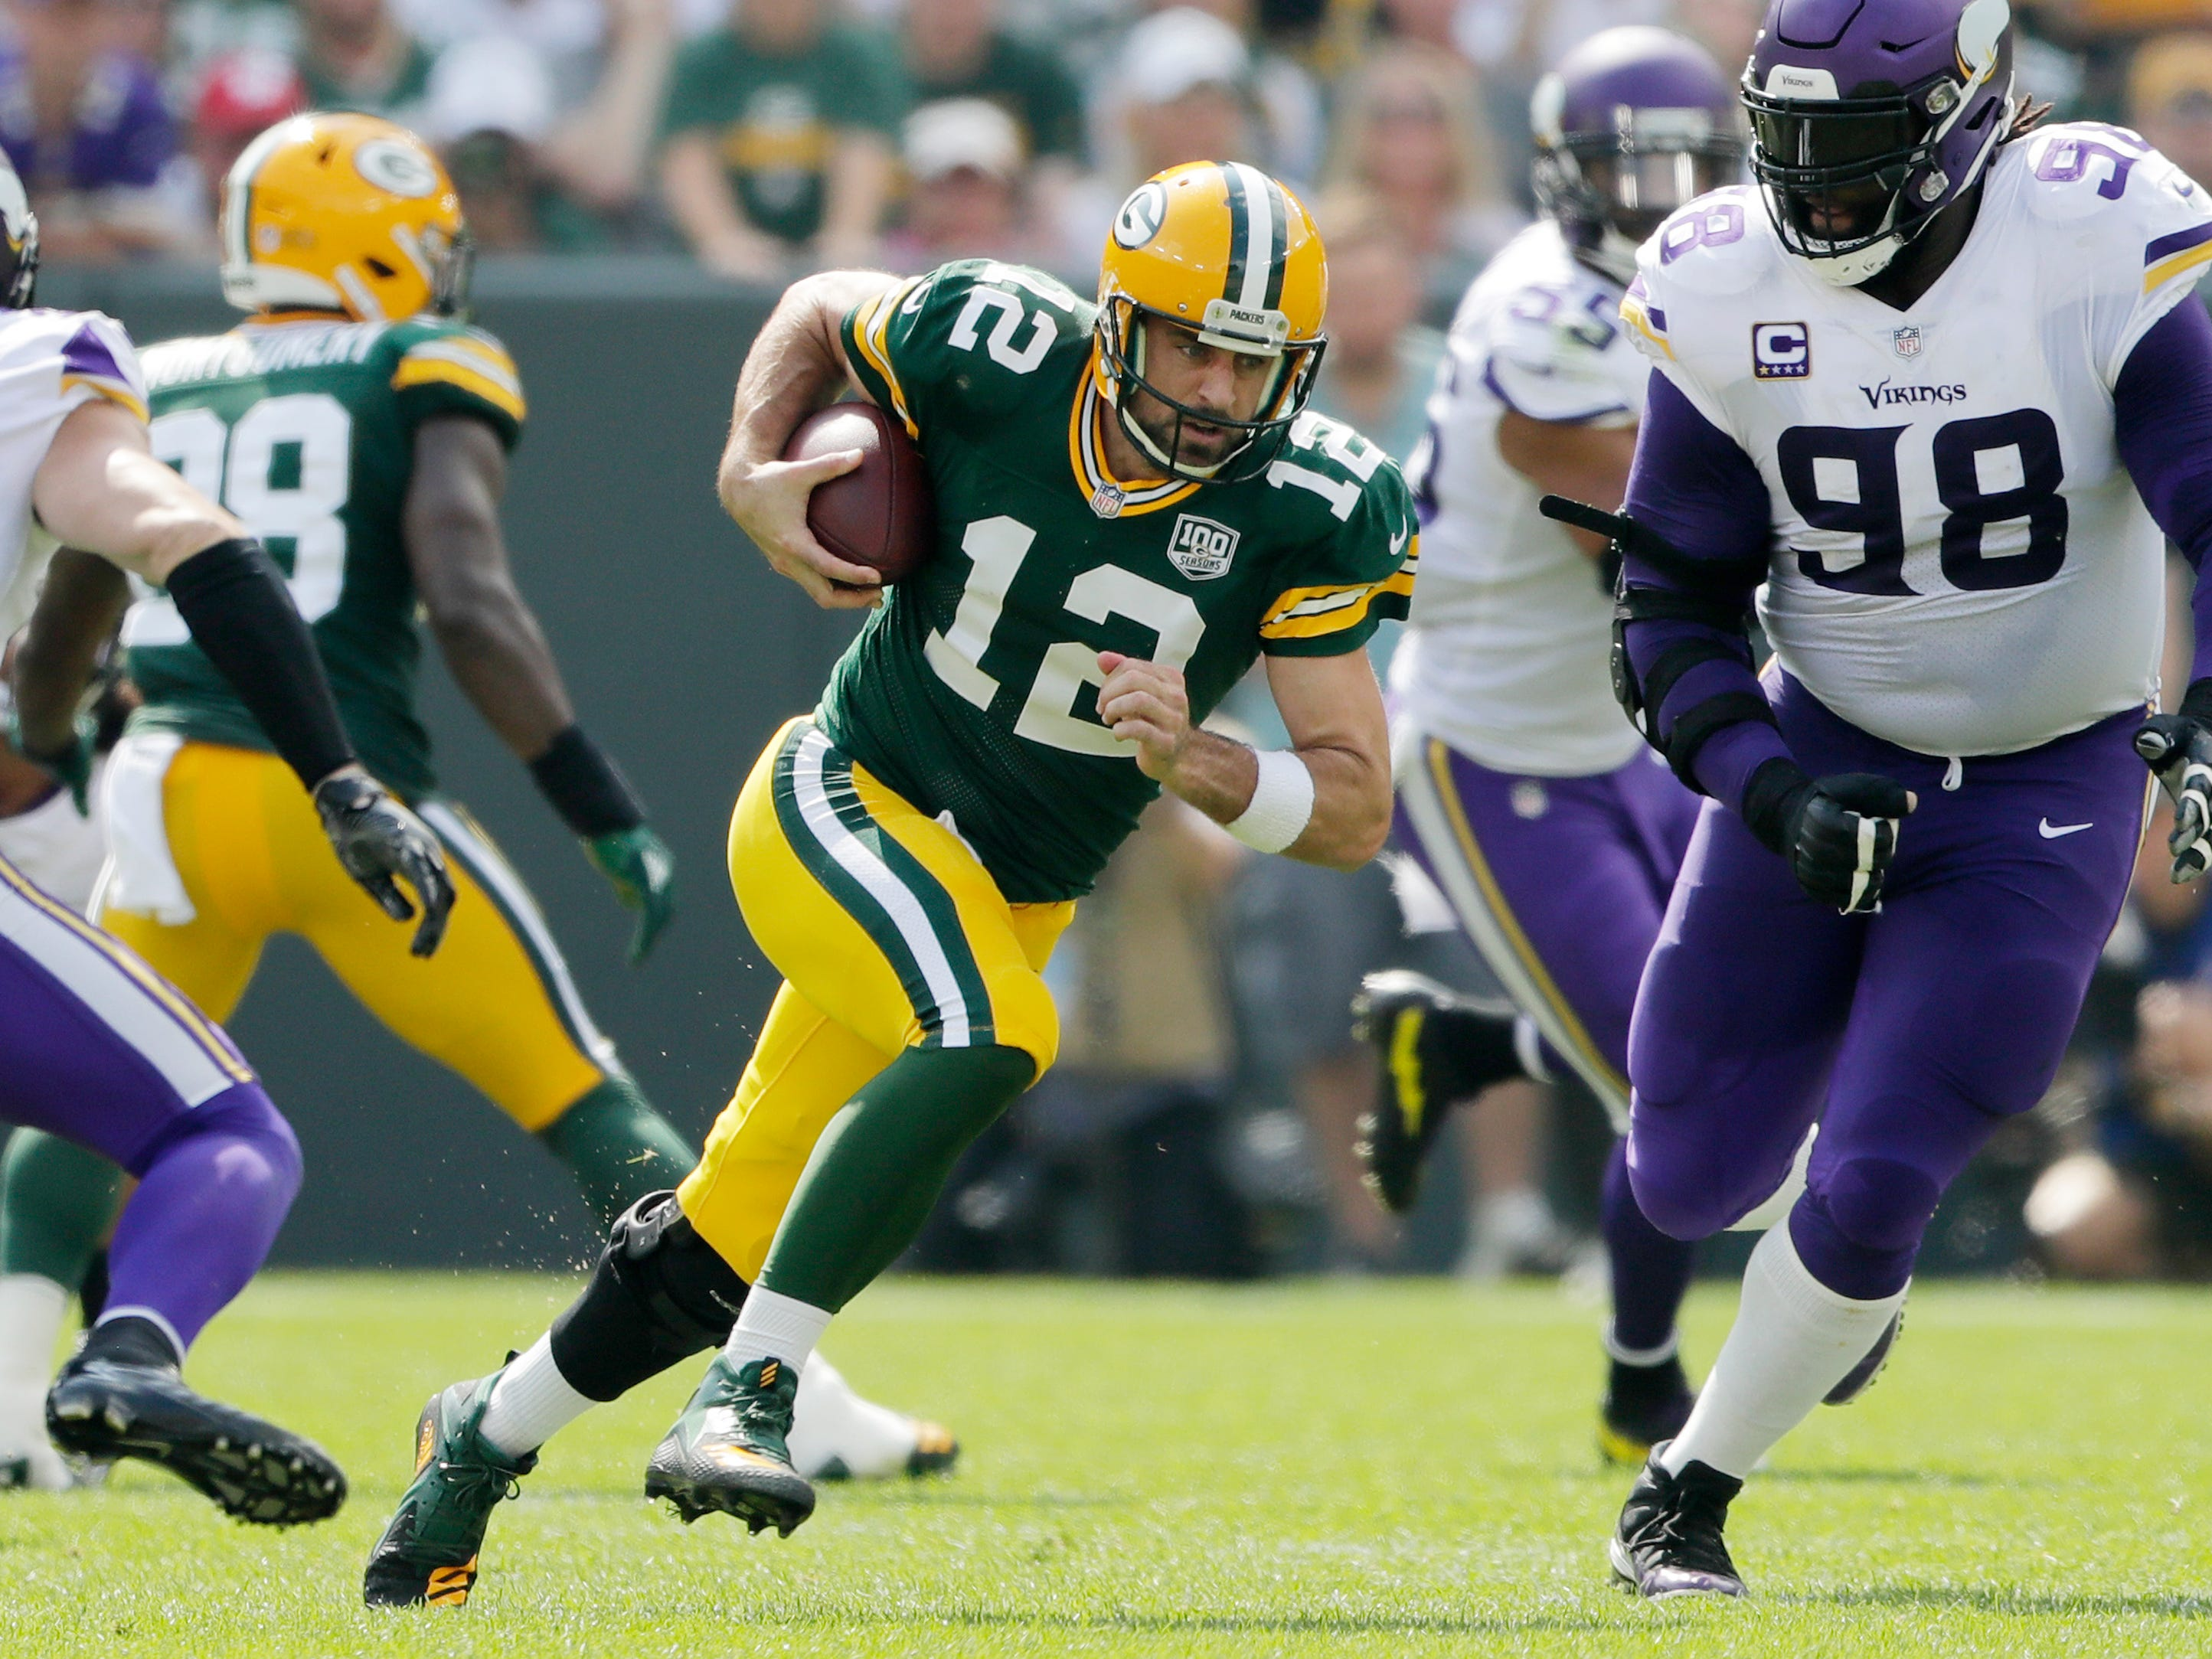 Green Bay Packers quarterback Aaron Rodgers (12) scrambles in the first quarter against the Minnesota Vikings at Lambeau Field on Sunday, September 16, 2018 in Green Bay, Wis.